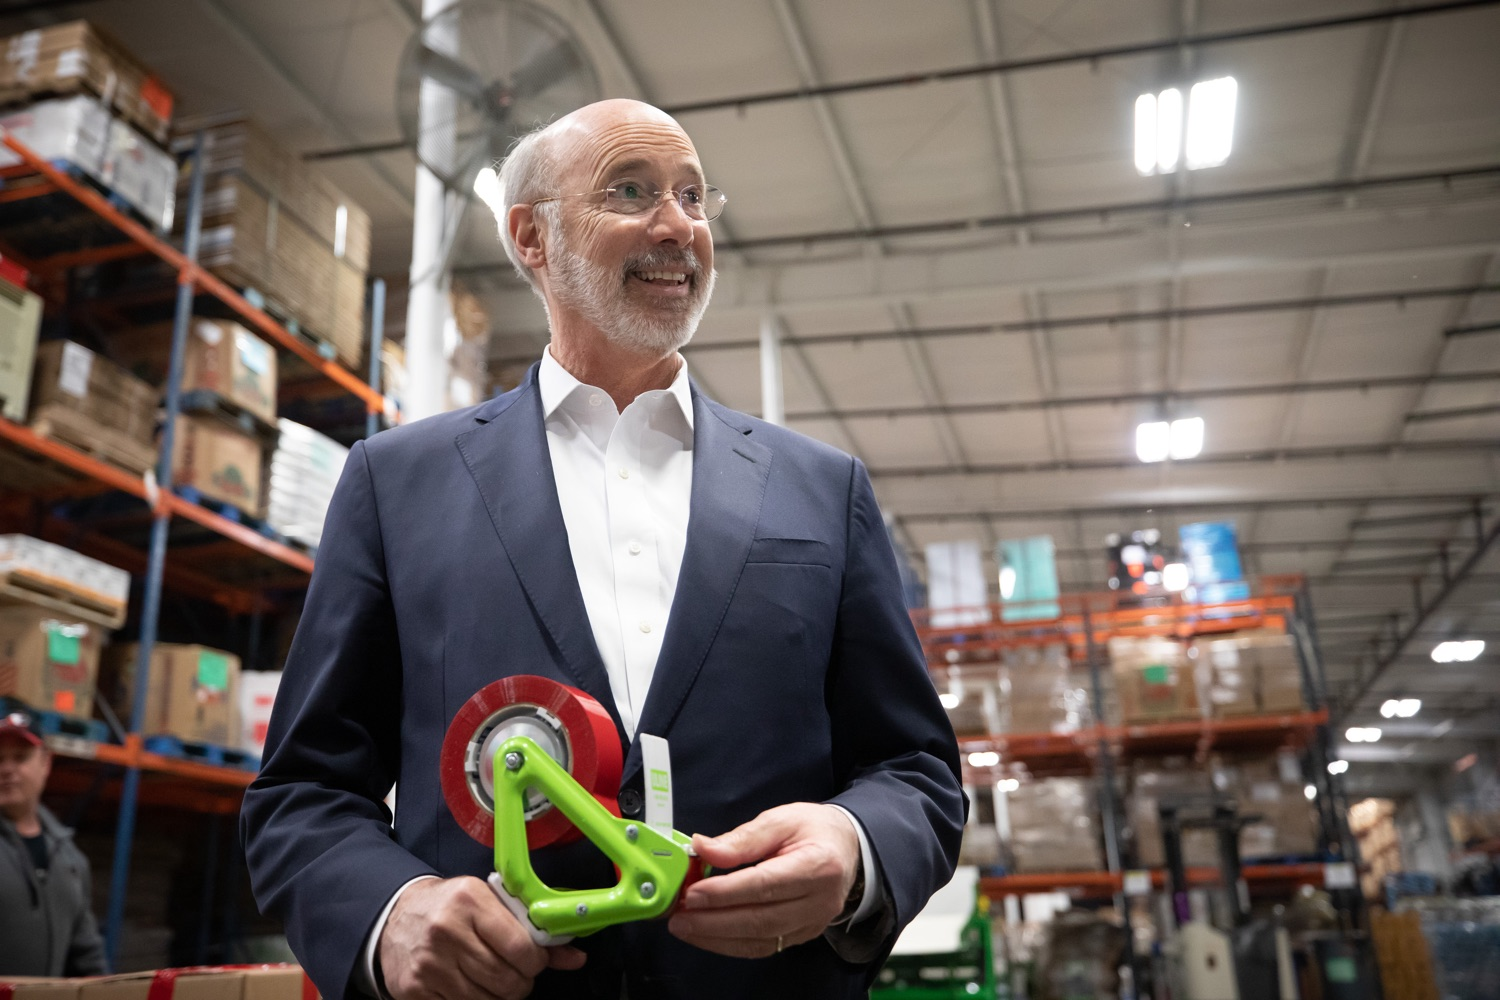 "<a href=""http://filesource.abacast.com/commonwealthofpa/photo/17632_gov_foodbank_volunteering_dz_009.jpg"" target=""_blank"">⇣ Download Photo<br></a>Governor Tom Wolf loading boxes of food at the Central Pennsylvania Food Bank.  The governor and first lady visit the Central Pennsylvania Food Bank in Harrisburg to participate in a volunteer project, packing boxes of food for veterans and their families. Ahead of Thanksgiving and the holiday season, Governor Tom Wolf and First Lady Frances Wolf are reminding Pennsylvanians of the importance of helping each other. Harrisburg, PA  Tuesday November 26, 2019"